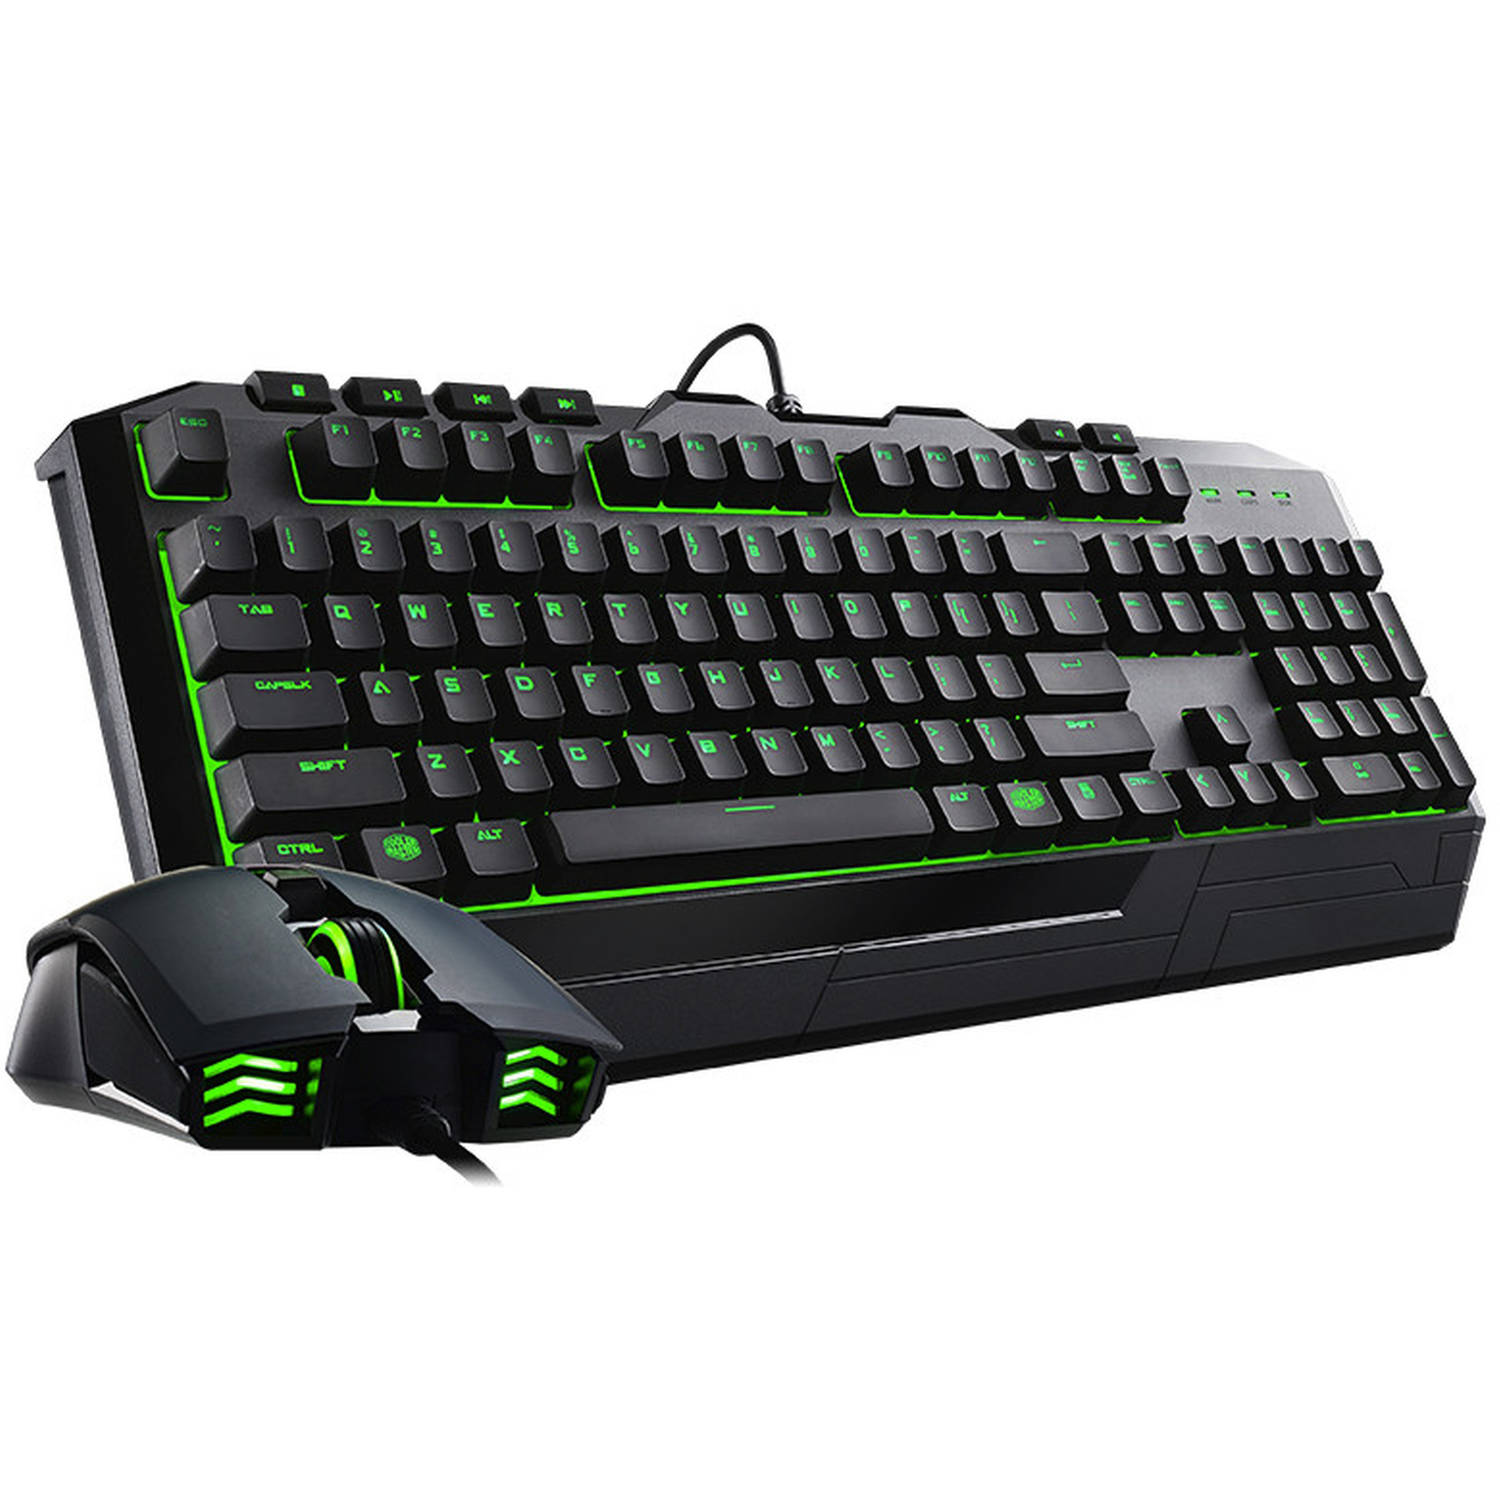 Cooler Master Devastator II SGB-3032-KKMF1-US Gaming Keyboard and Mouse Bundle, Green LED